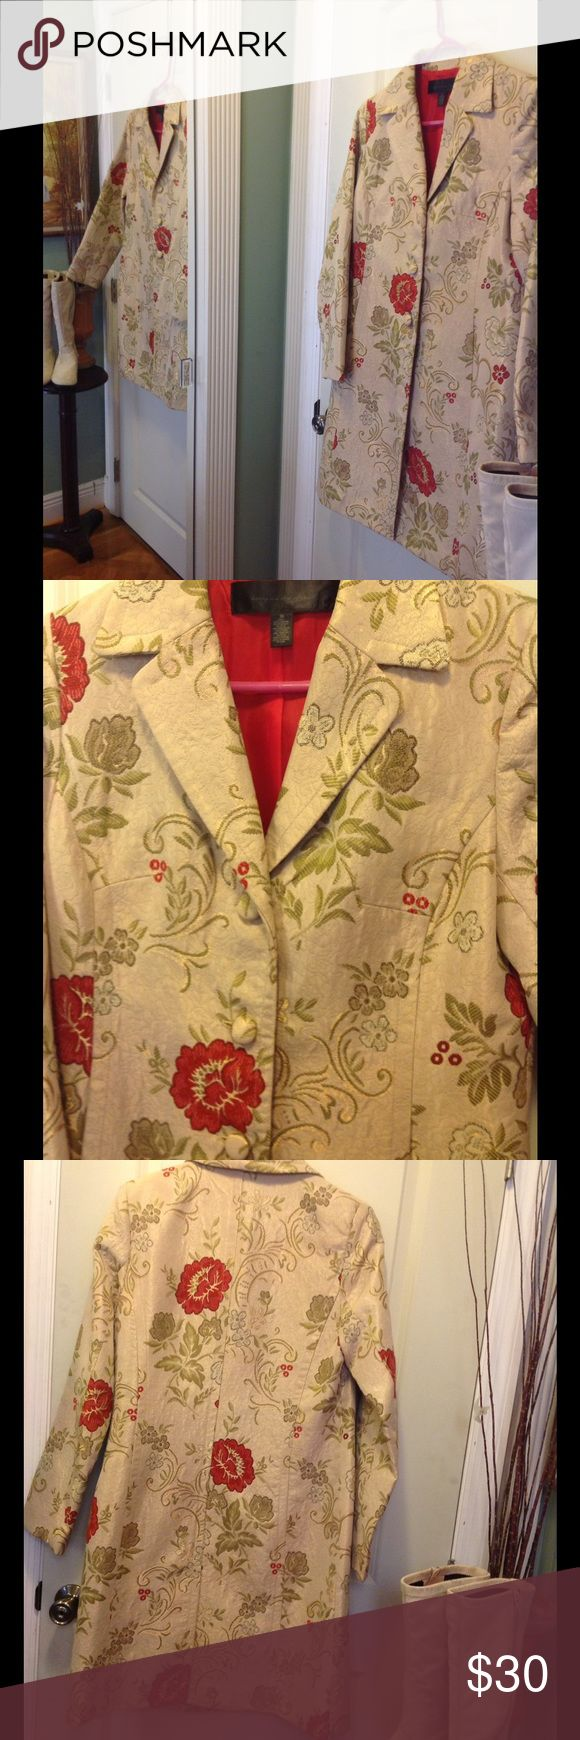 """Asian tapestry gorgeous long jacket 🎉SALE 🎉 Gorgeous gold/green/red Asian tapestry long jacket. In size 10 by apostrophe  60%polyester and 40%rayon. Fully lined in red satin   Bust measures 19""""x2. Waist 18""""x2. 2 pockets. 3 covered button details with pleated look on front for slimming effect 37"""" long sleeves 25"""" Apostrophe Jackets & Coats Pea Coats"""